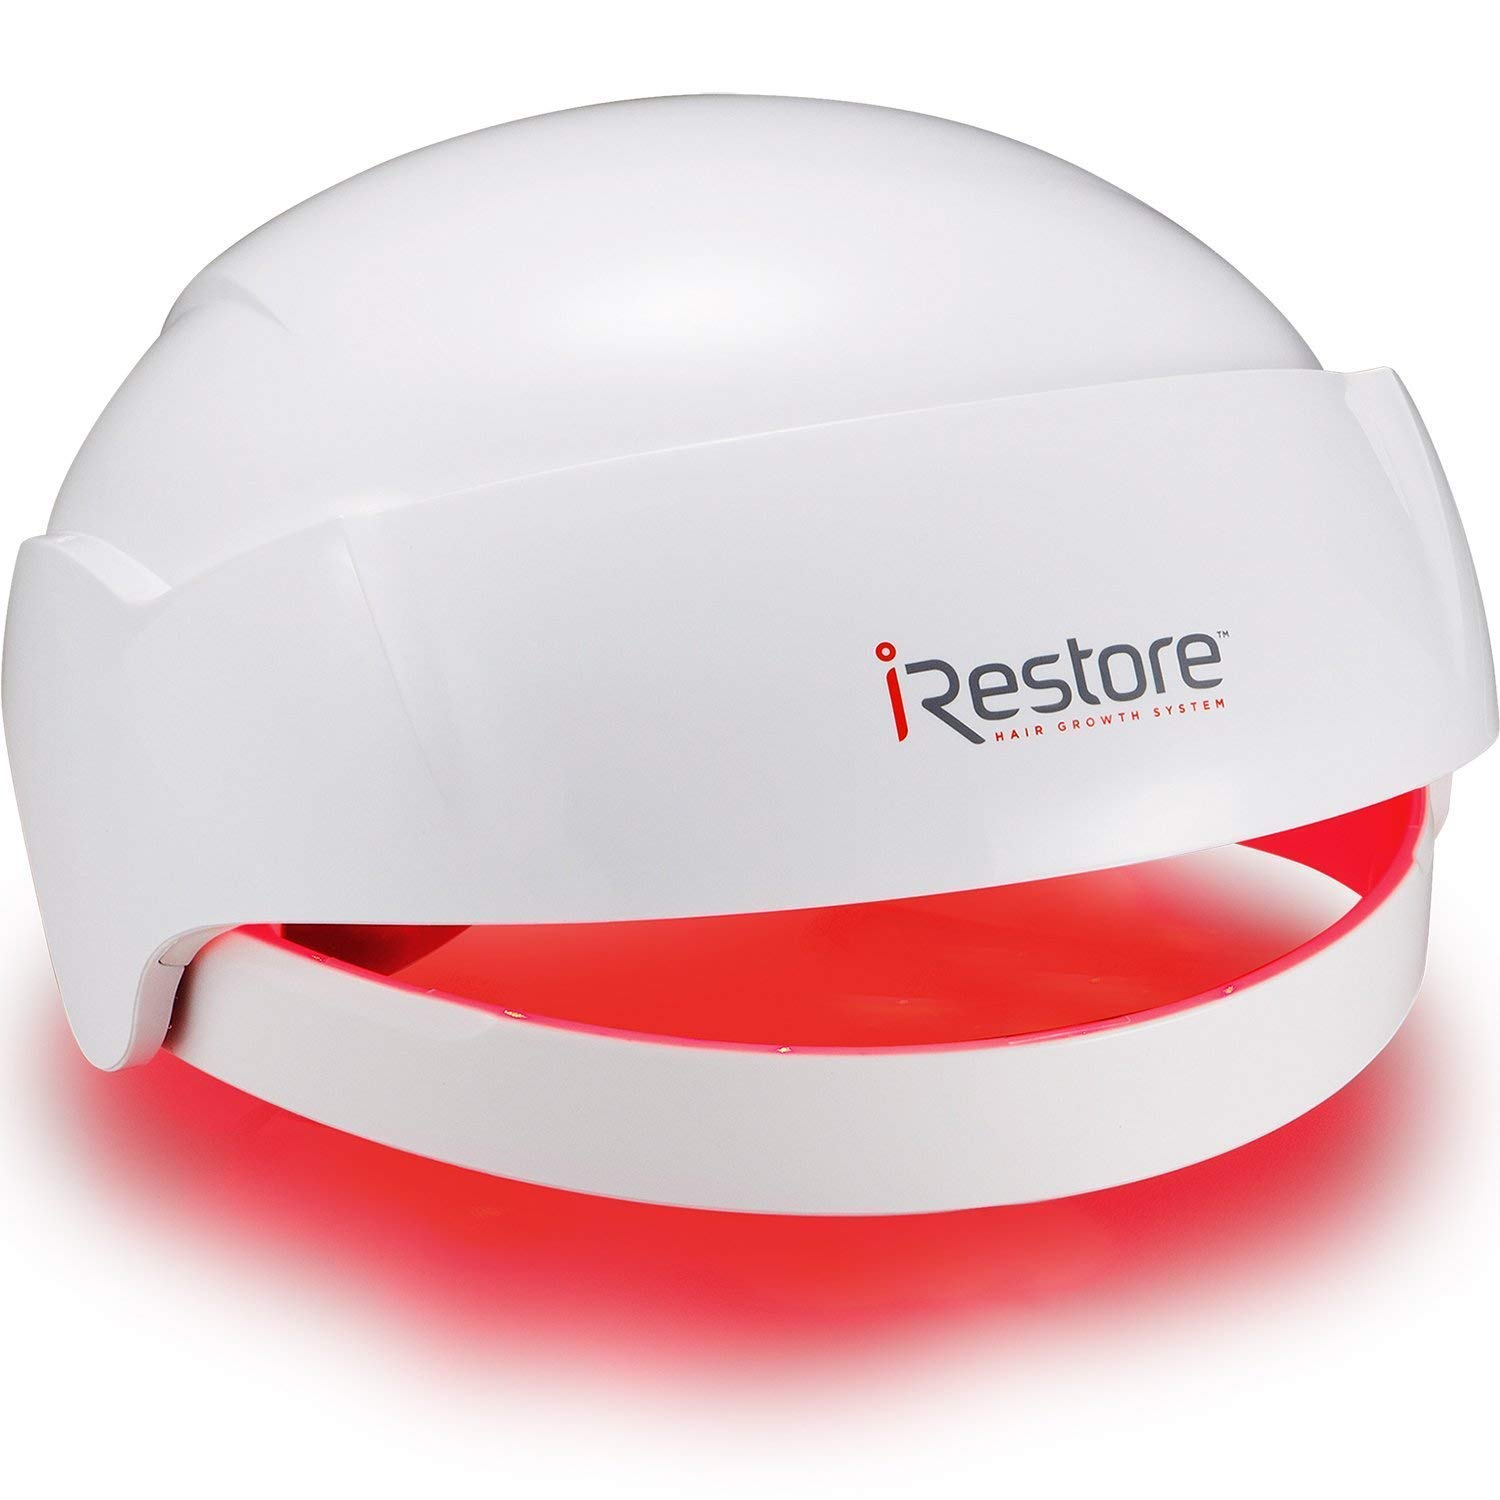 iRestore Laser Hair Growth System - FDA Cleared Hair Loss Treatments - Hair Regrowth for Men and Women with Balding, Thinning Hair - Laser Cap Uses Red Light Therapy Like Laser Comb Hair Loss Products: Beauty